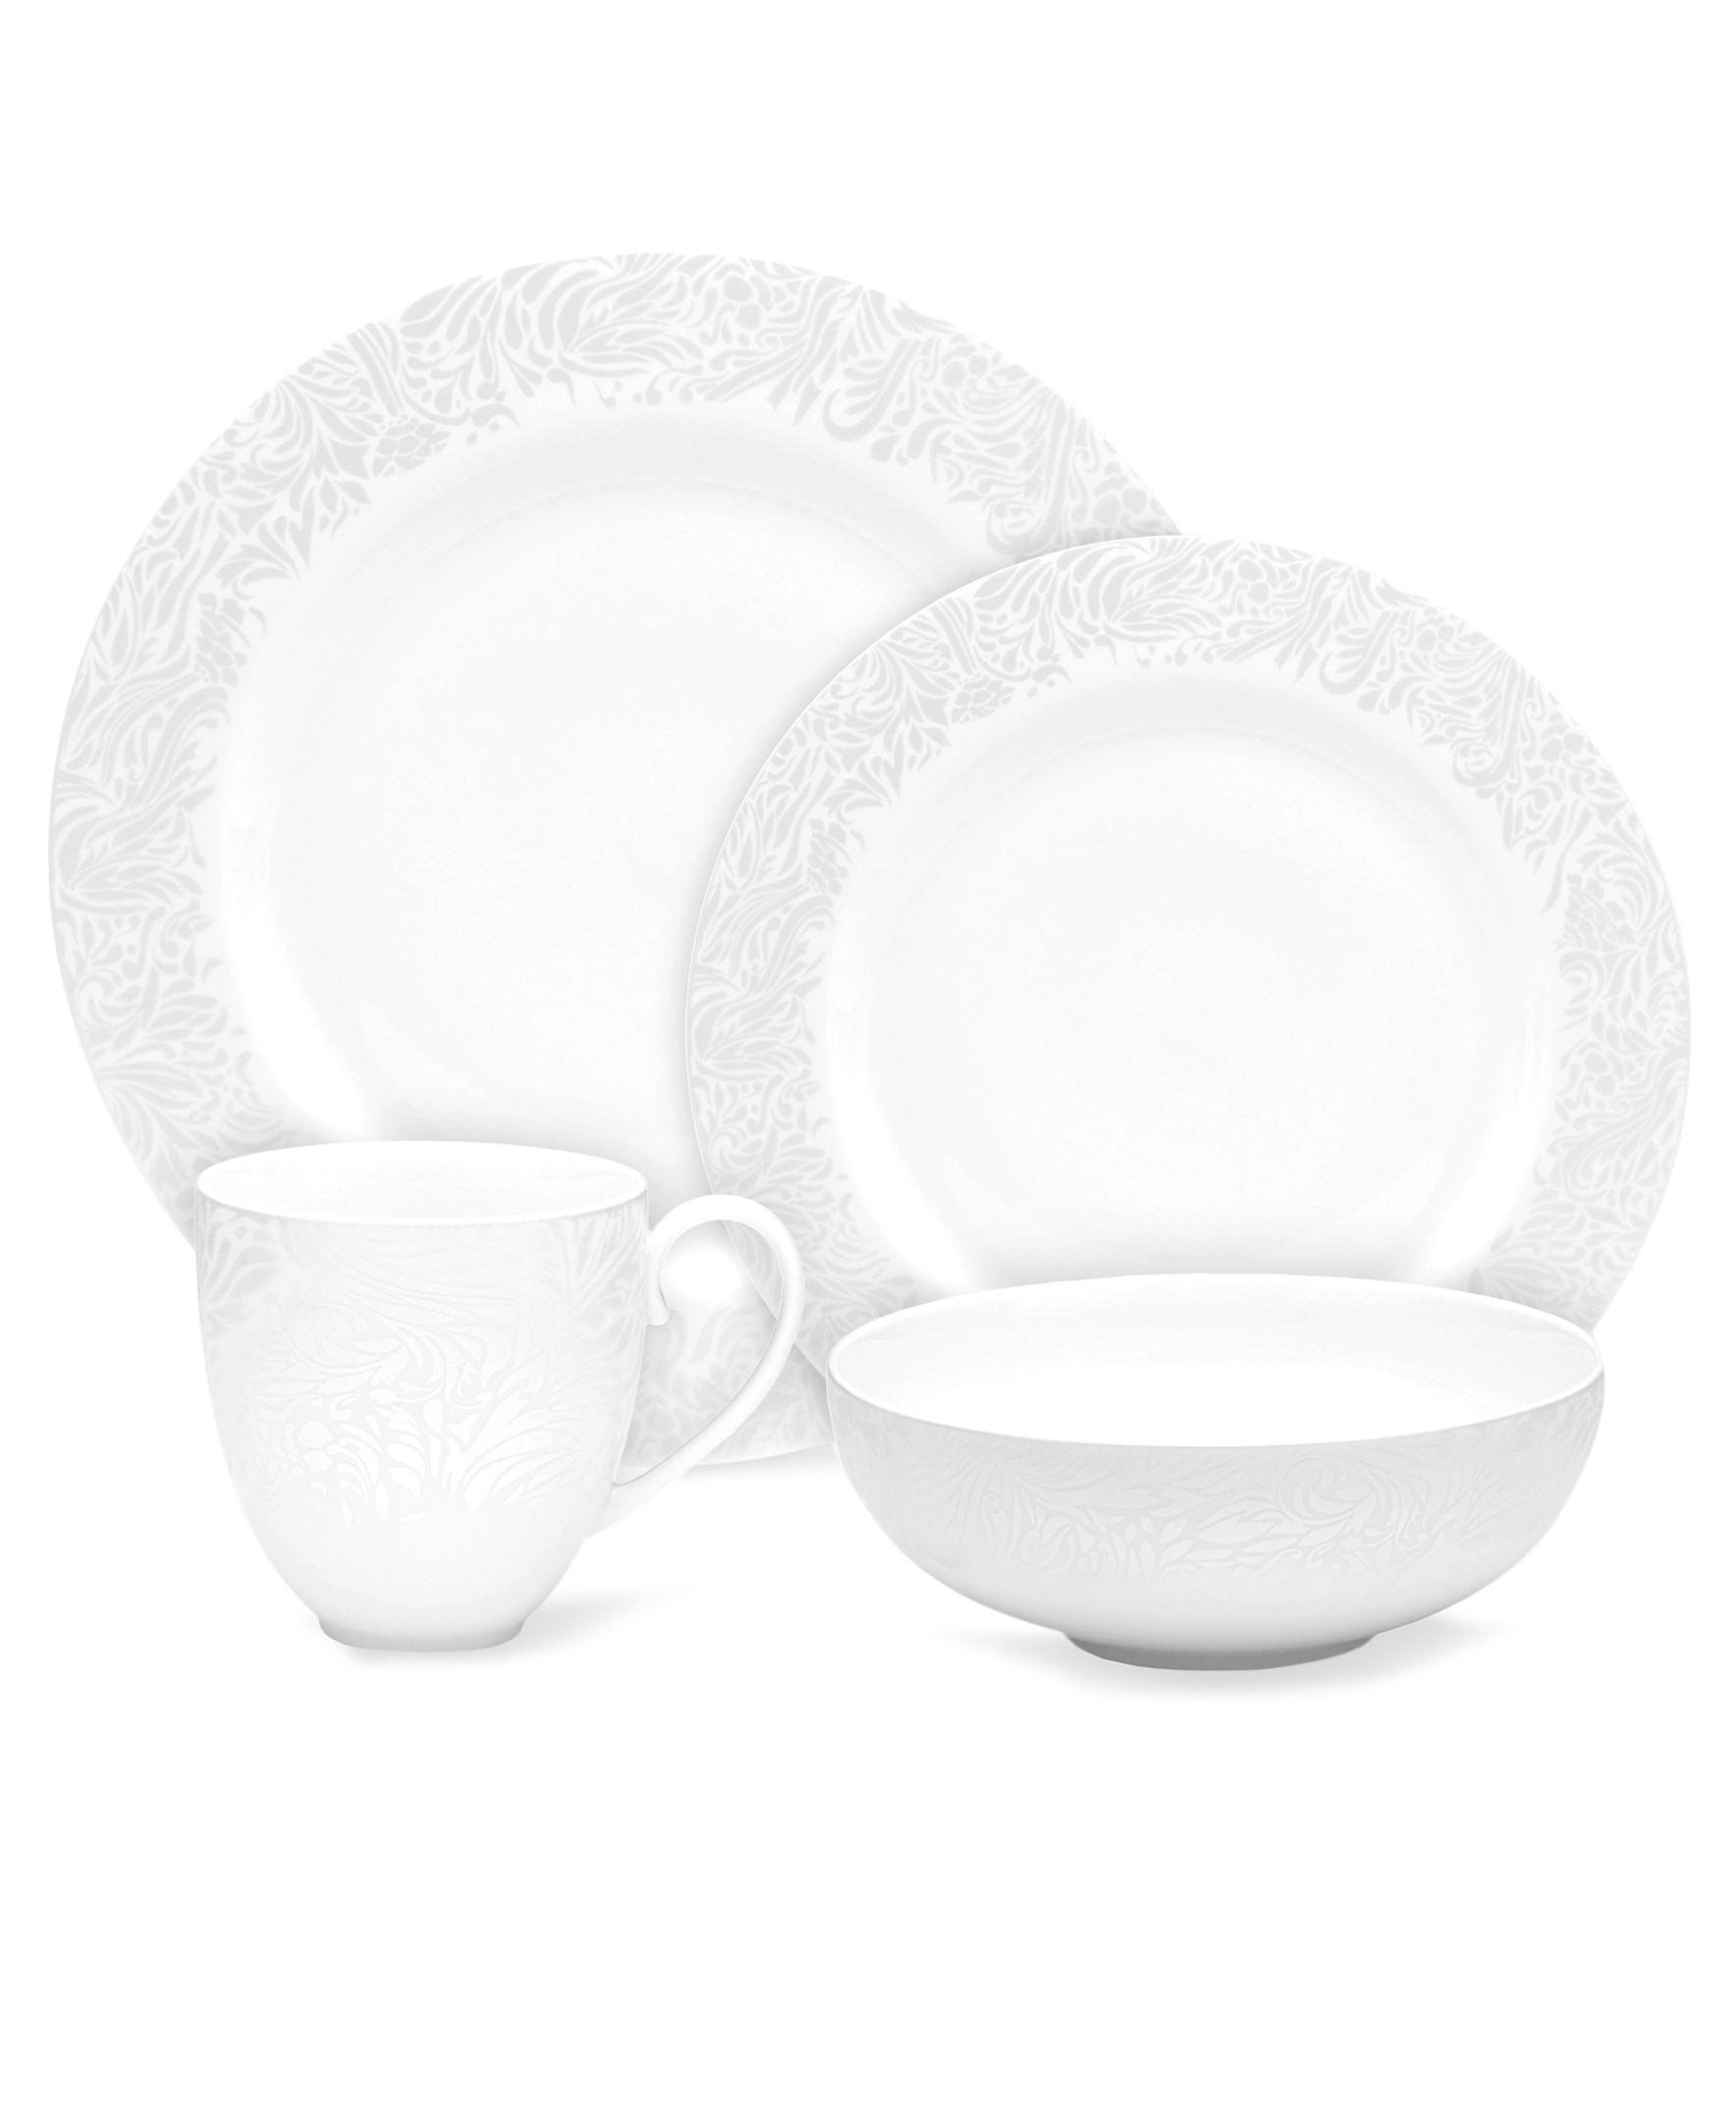 Monsoon Dinnerware Collection by Denby Lucille Silver 4 Piece Place Setting  sc 1 st  Pinterest & Monsoon Dinnerware Collection by Denby Lucille Silver 4 Piece Place ...